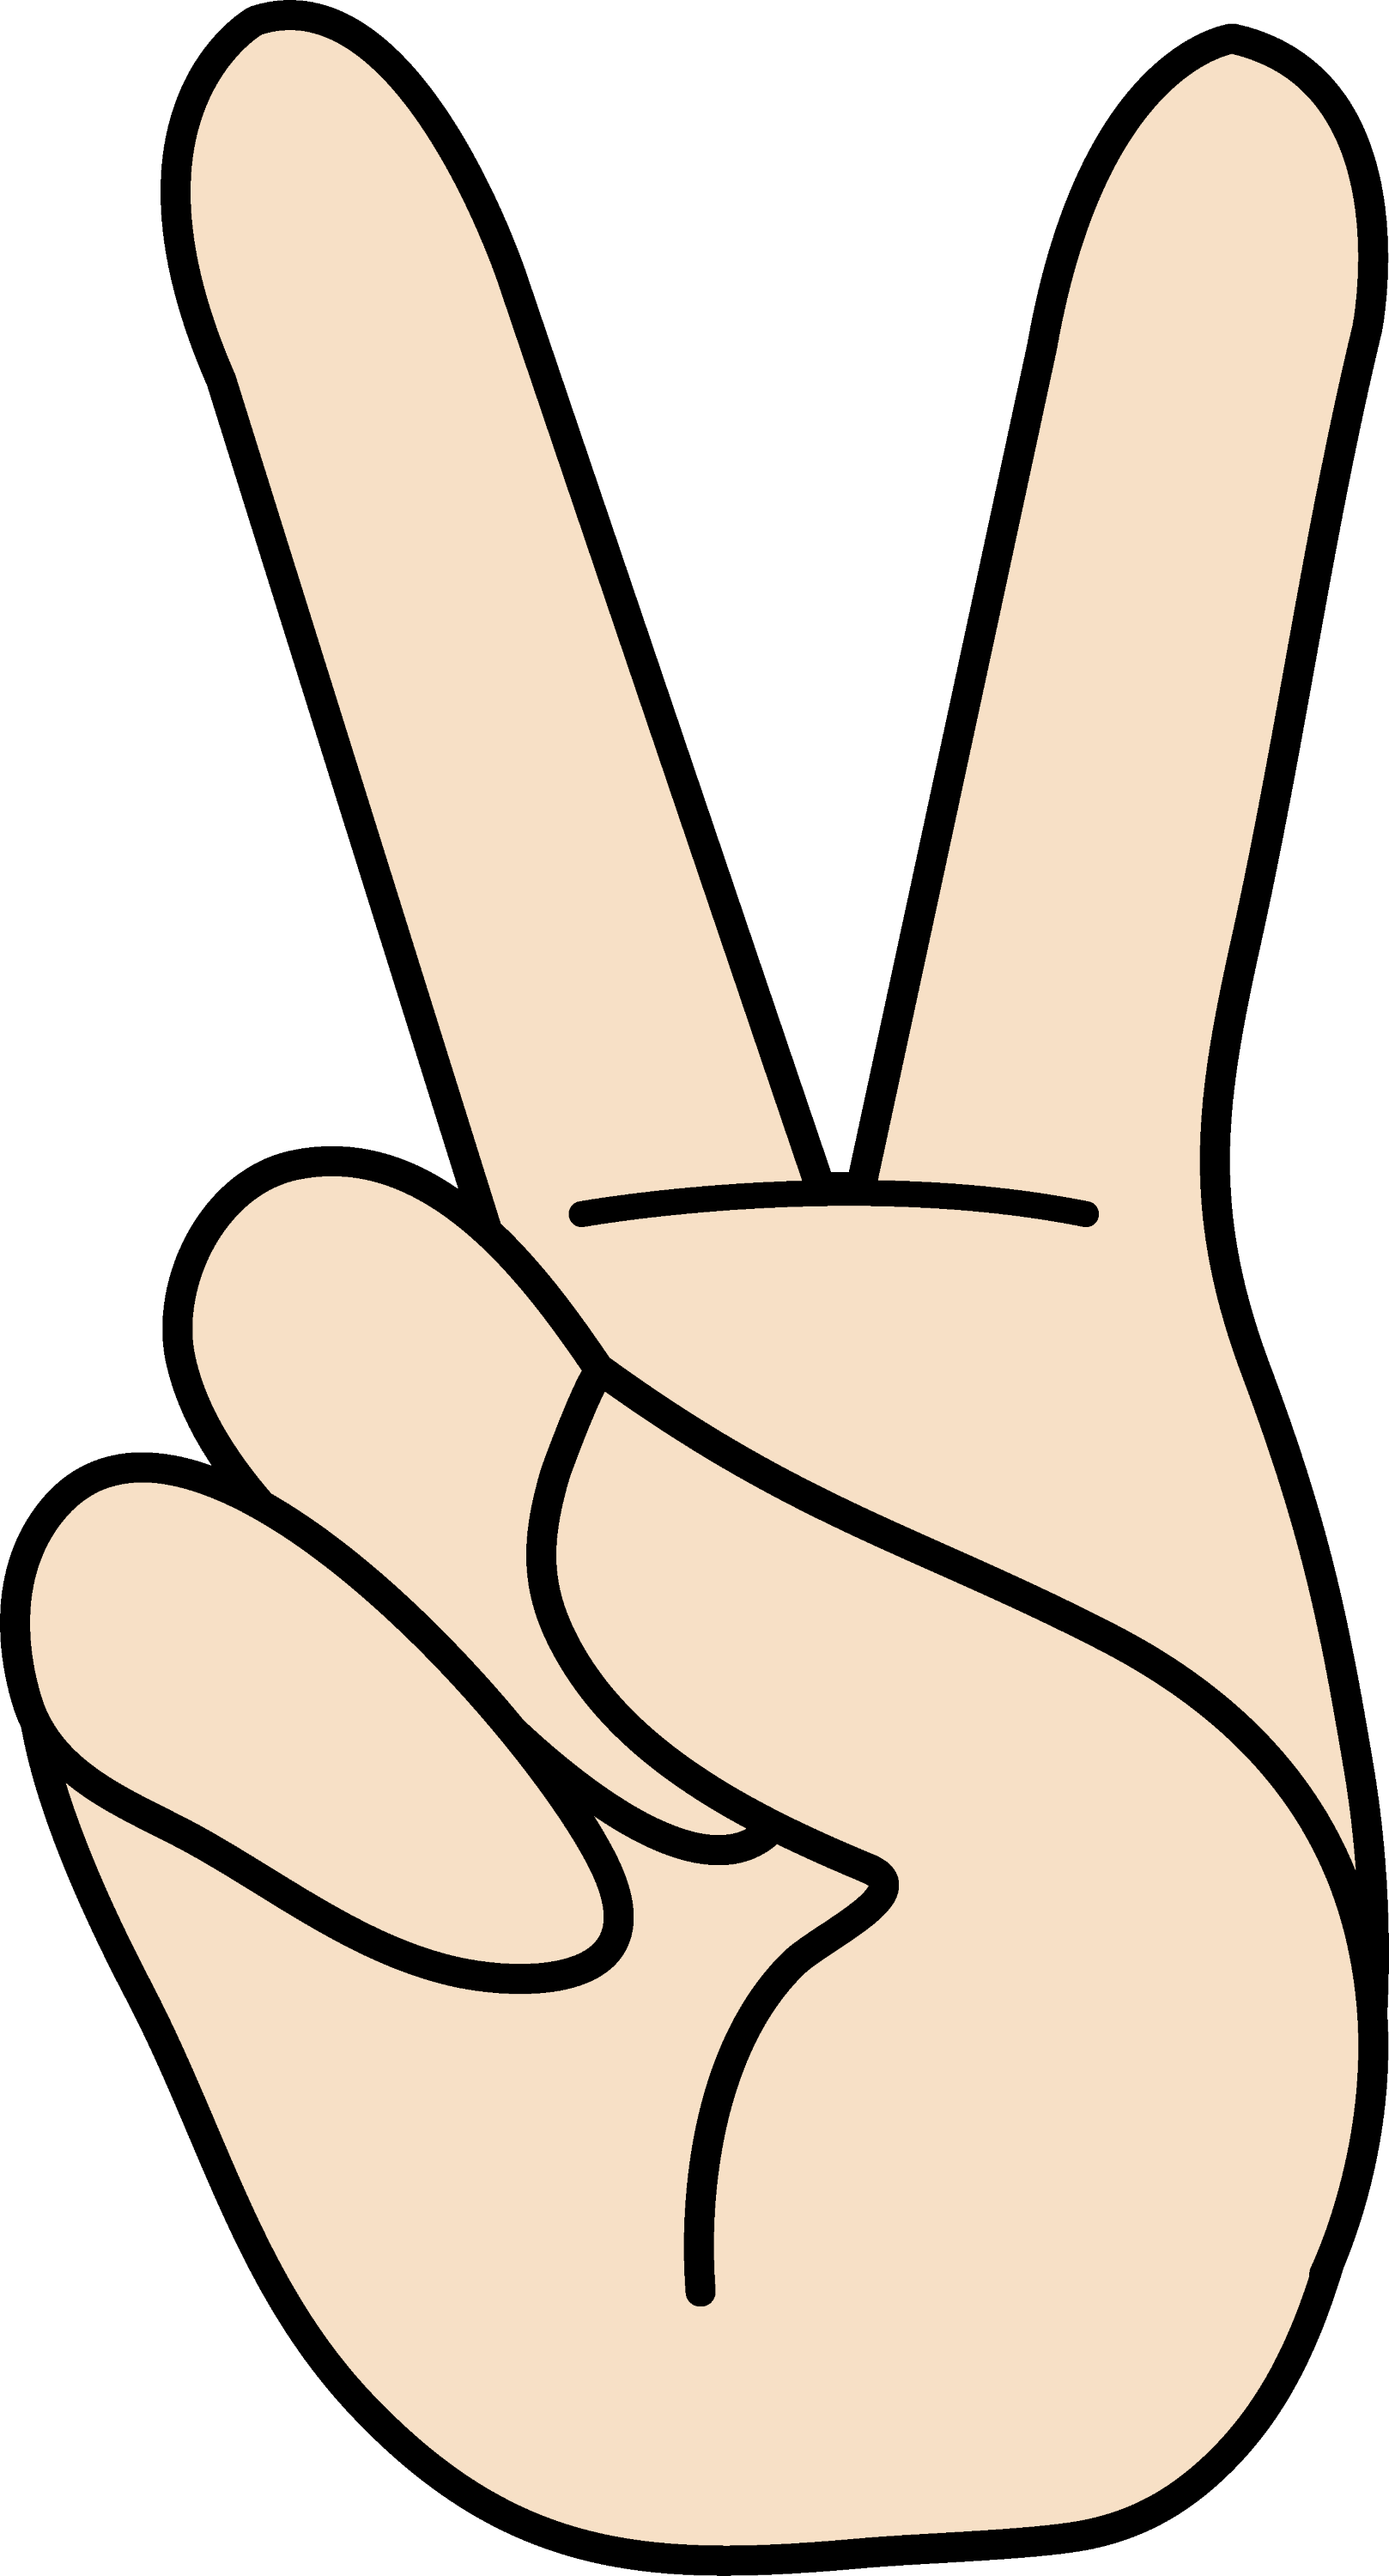 peace hand sign clipart free clip art rh sweetclipart com clipart hands in the air clipart handbags